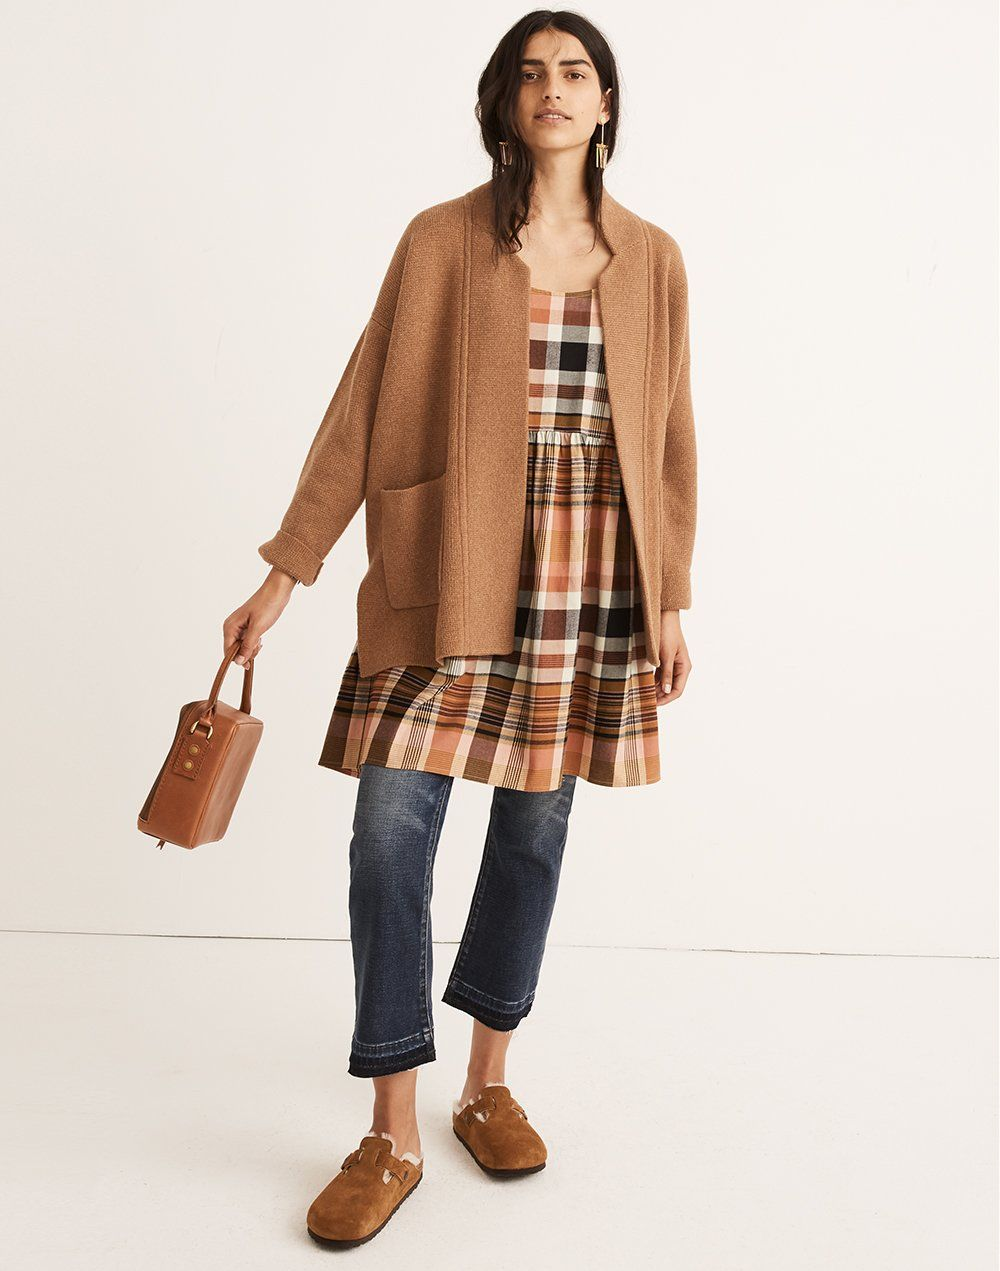 2f319aeb6fe294 madewell spencer sweater-coat worn with plaid babydoll cami dress, cali  demi-boot jeans, the square satchel bag + birkenstock suede boston clogs.